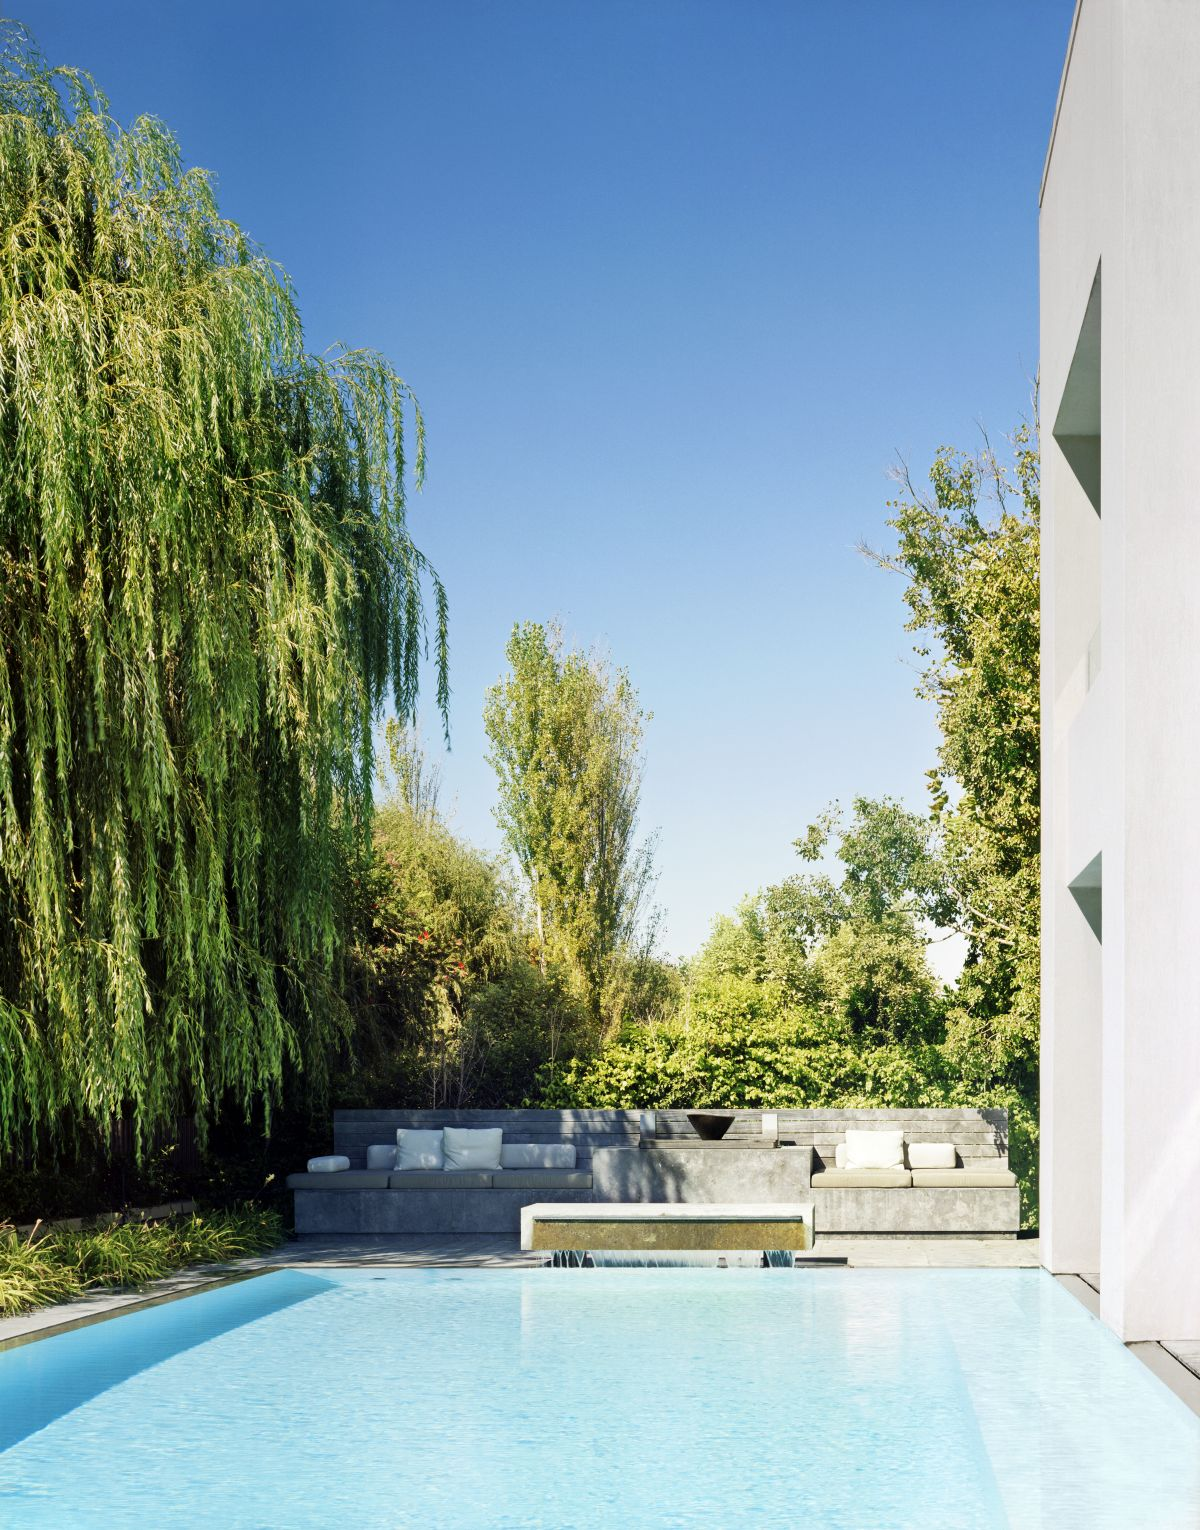 The swimming pool is exquisitely framed by trees and greenery as well as by a sculptural lounge area